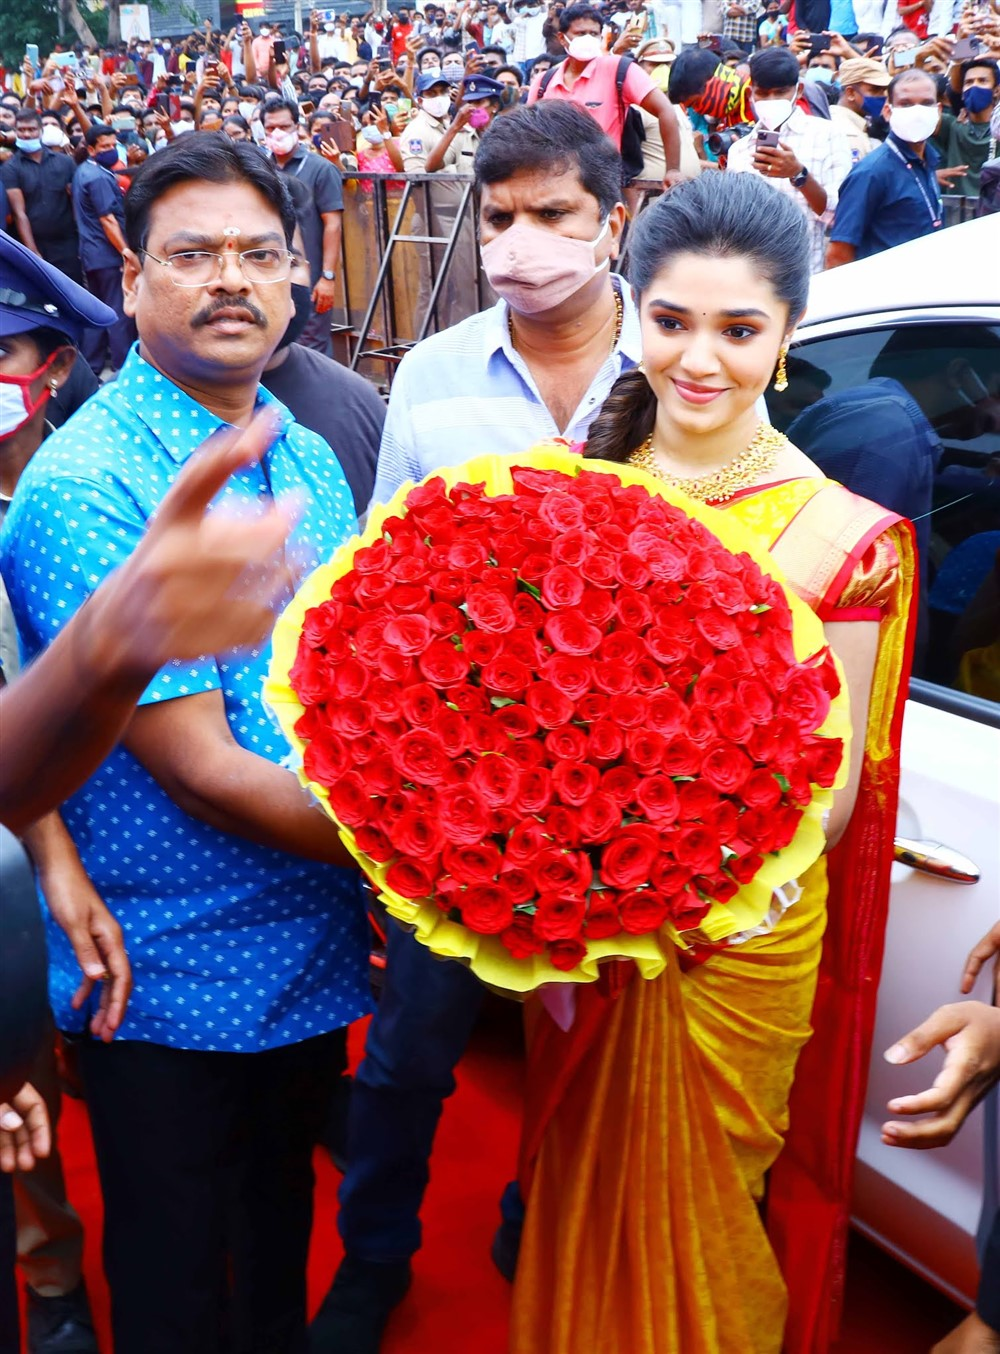 Actress Krithi Shetty being received by Mr PN Murthy (Extreme right), Founder, Maangalya shopping malls